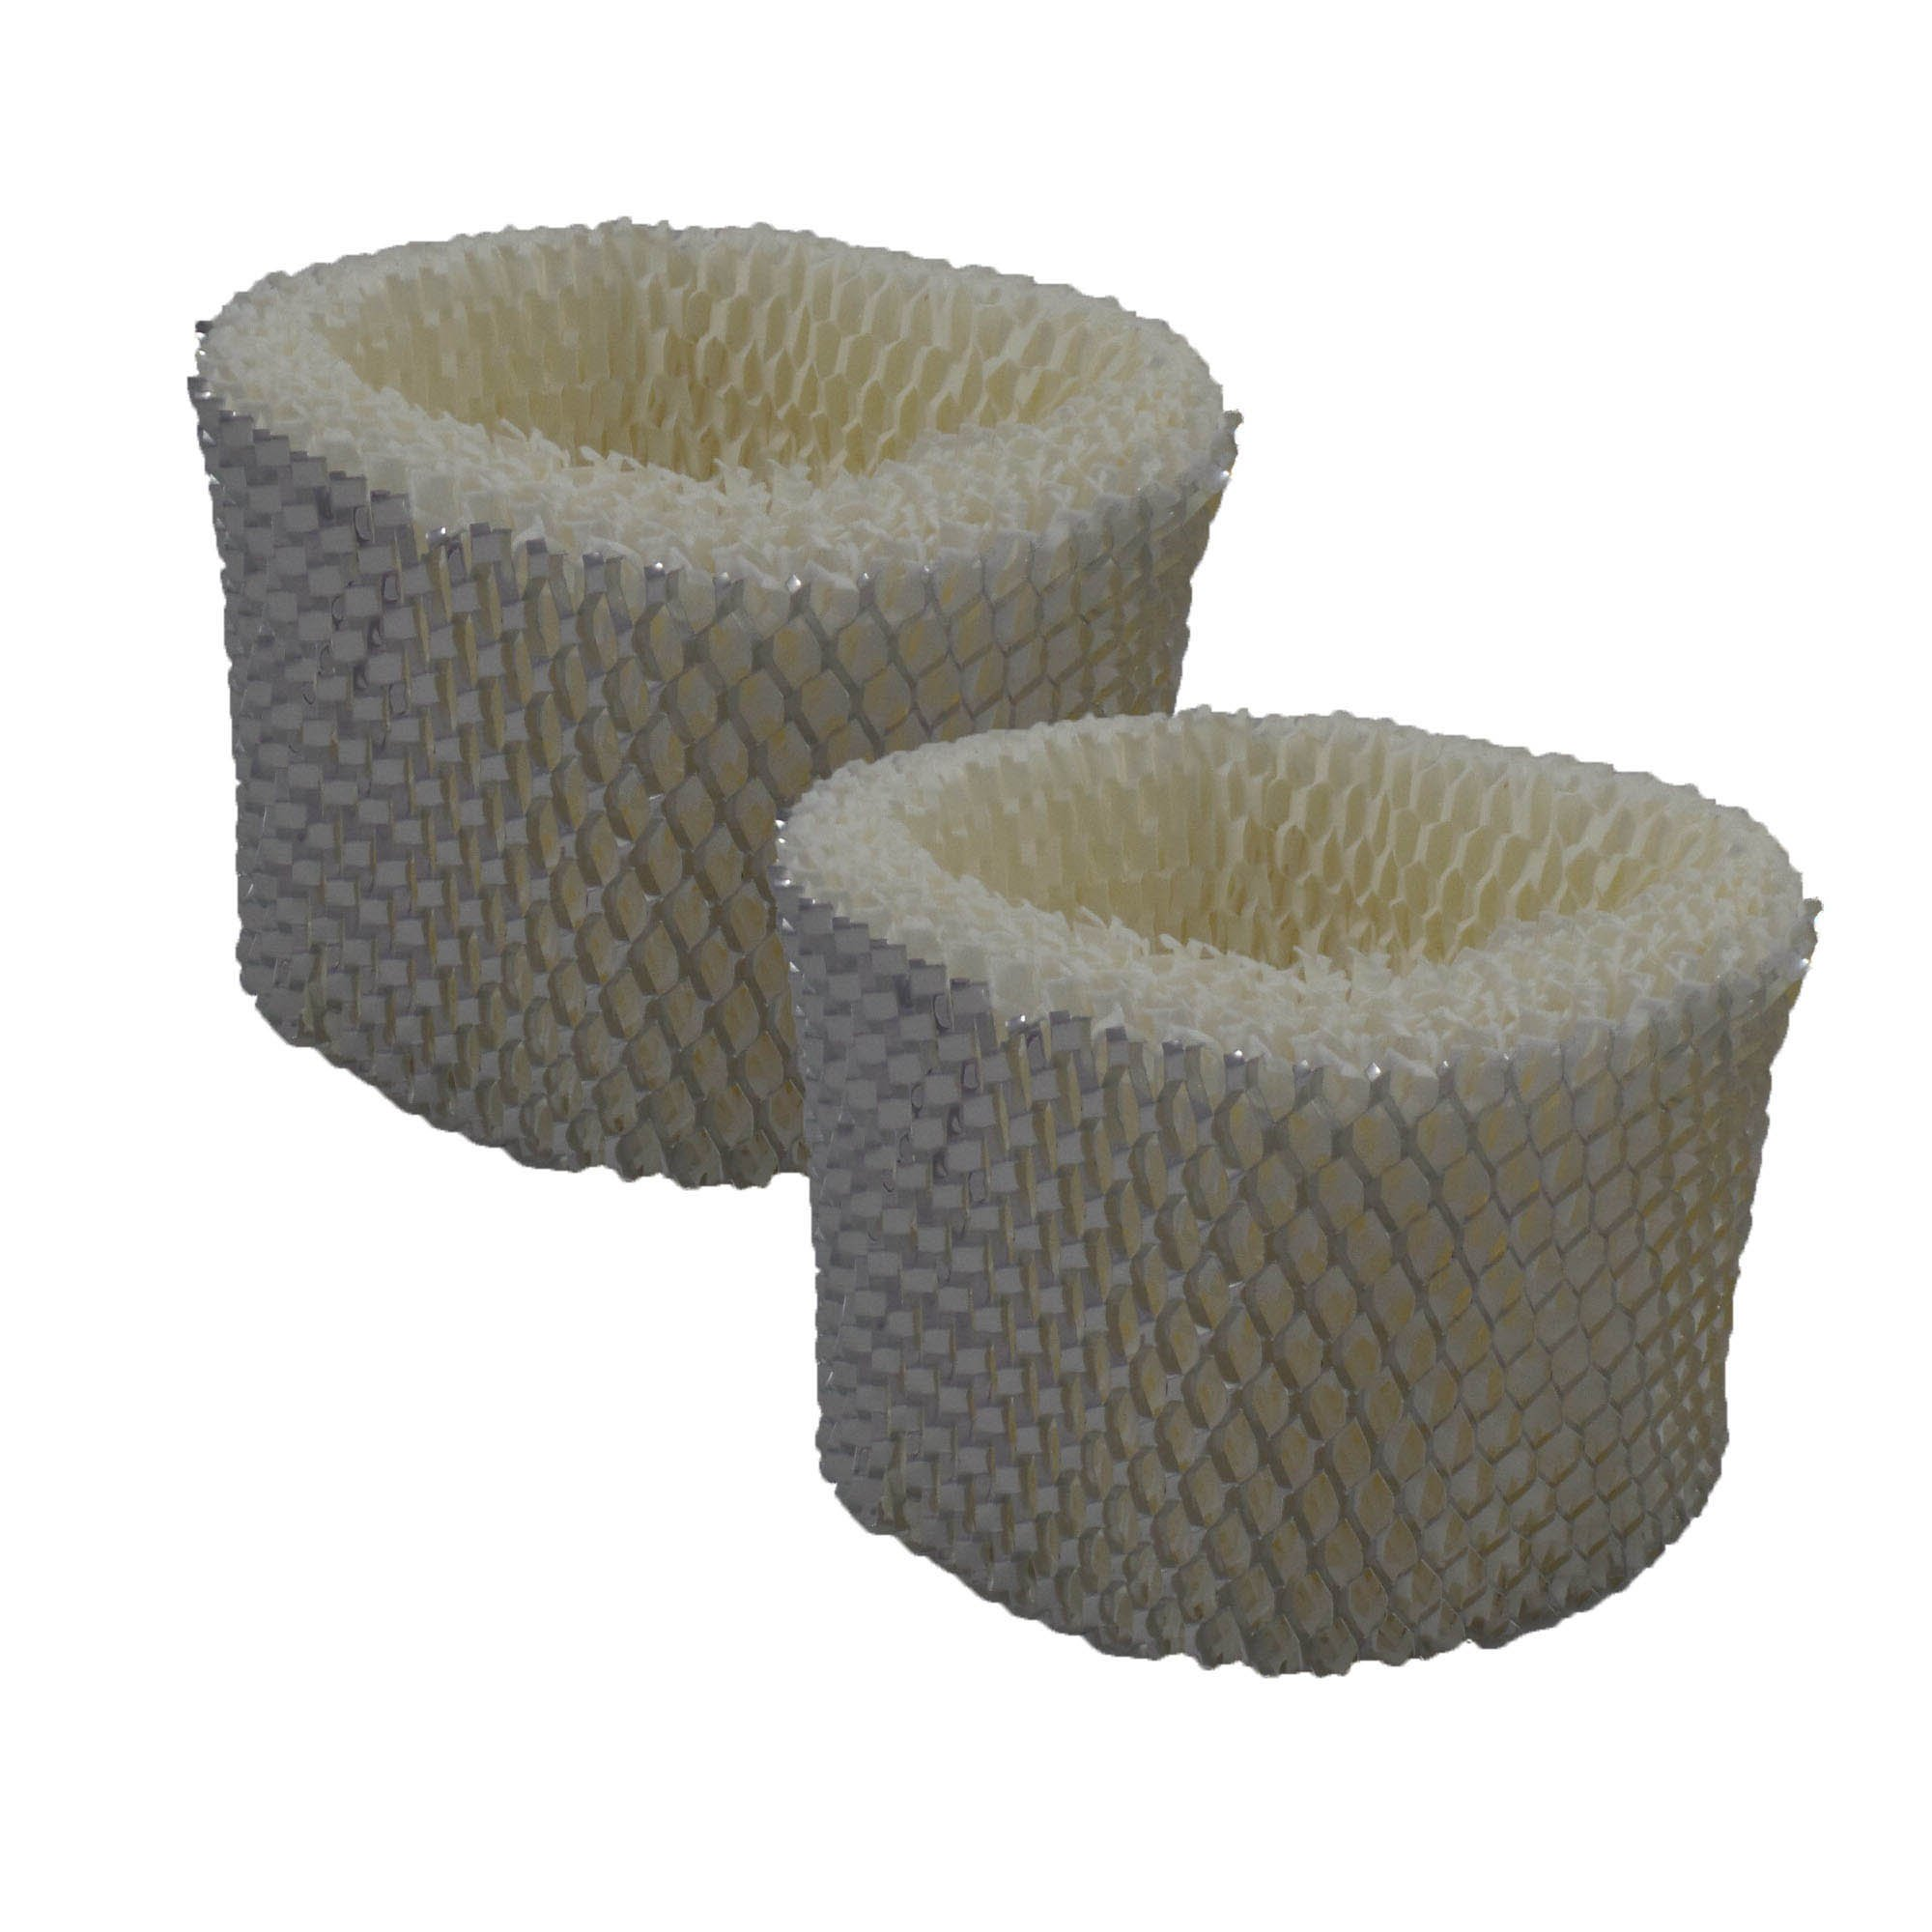 Air Filter Factory 2 PACK Compatible Replacement For Honeywell HAC-504, HAC504, HAC504AW, ECM-250i Humidifer Filter